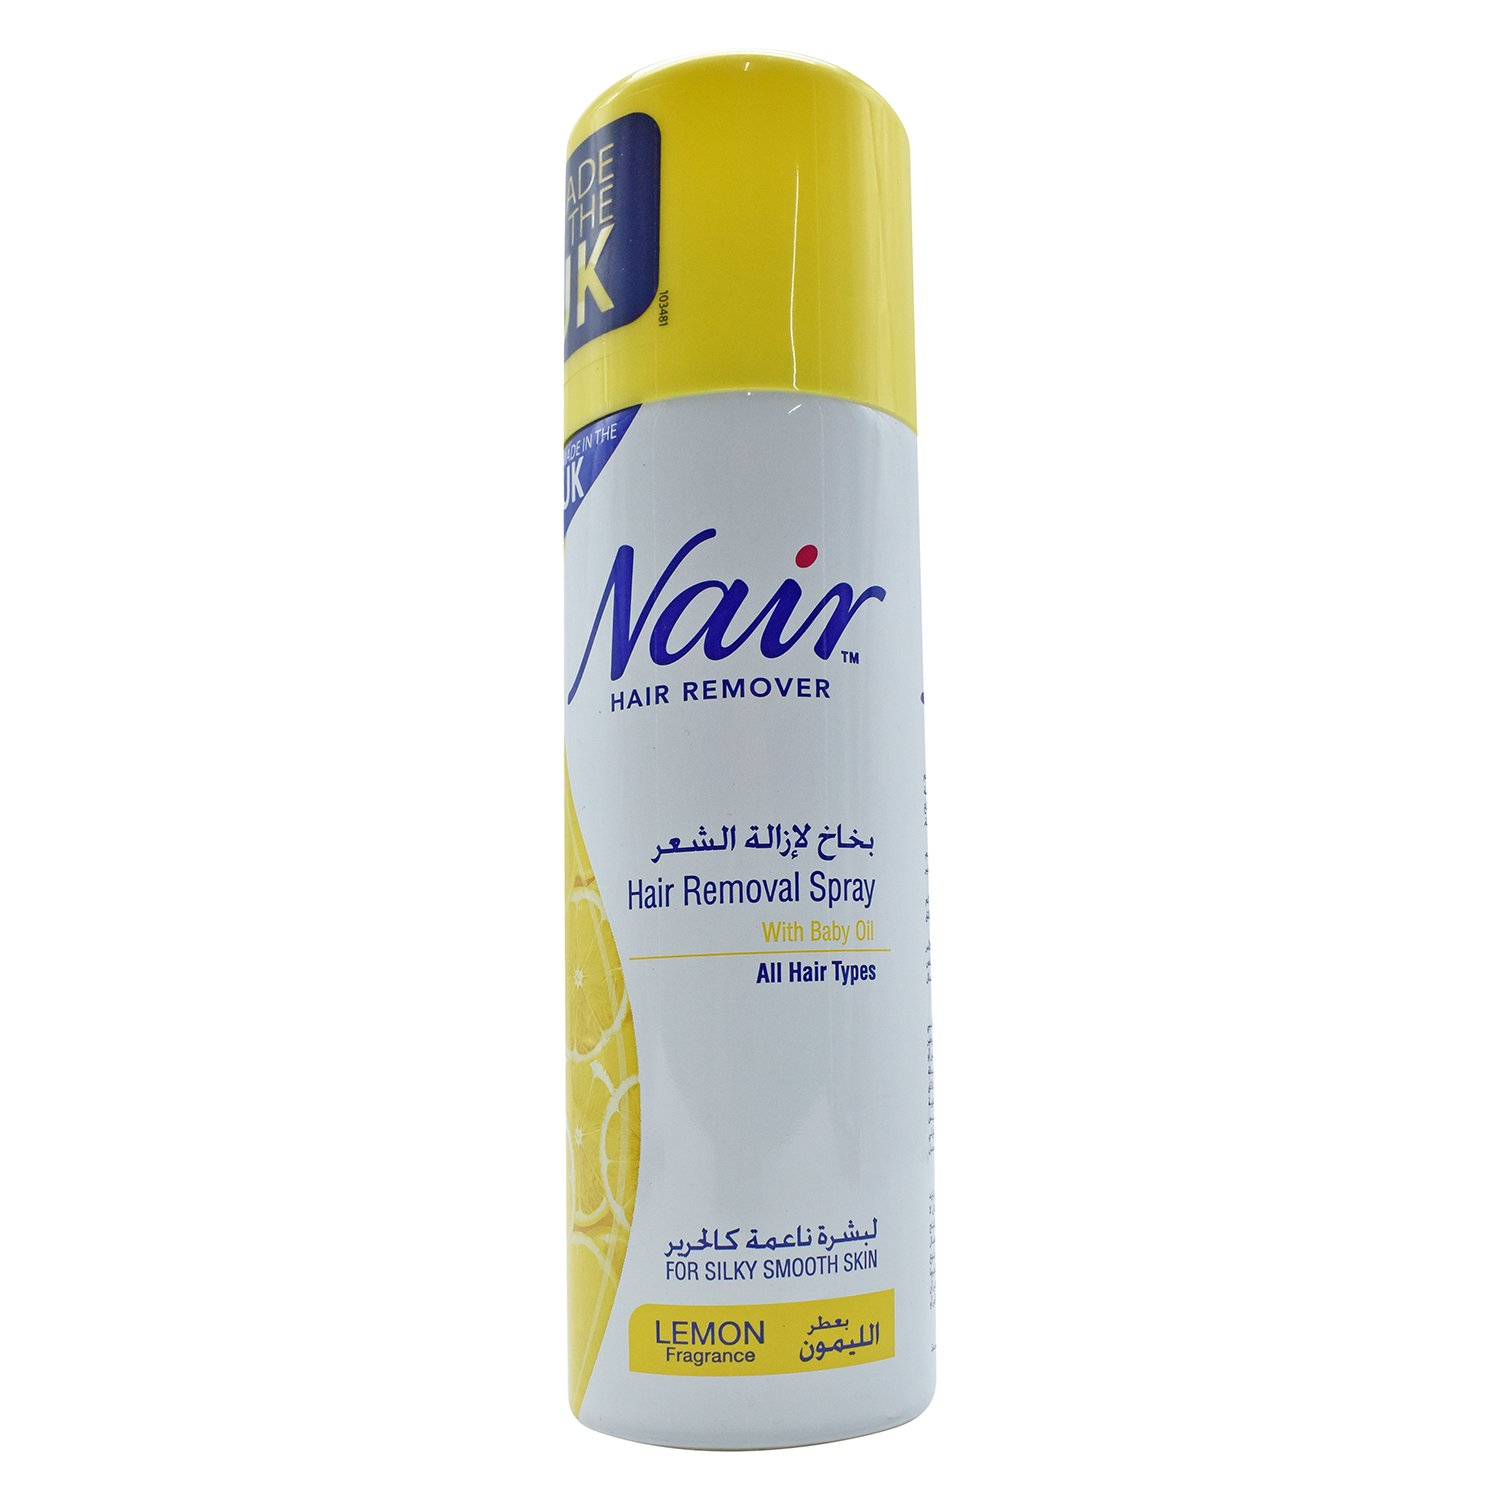 Buy Nair Hair Remover Hair Removal Spray Lemon Fragrance 200ml